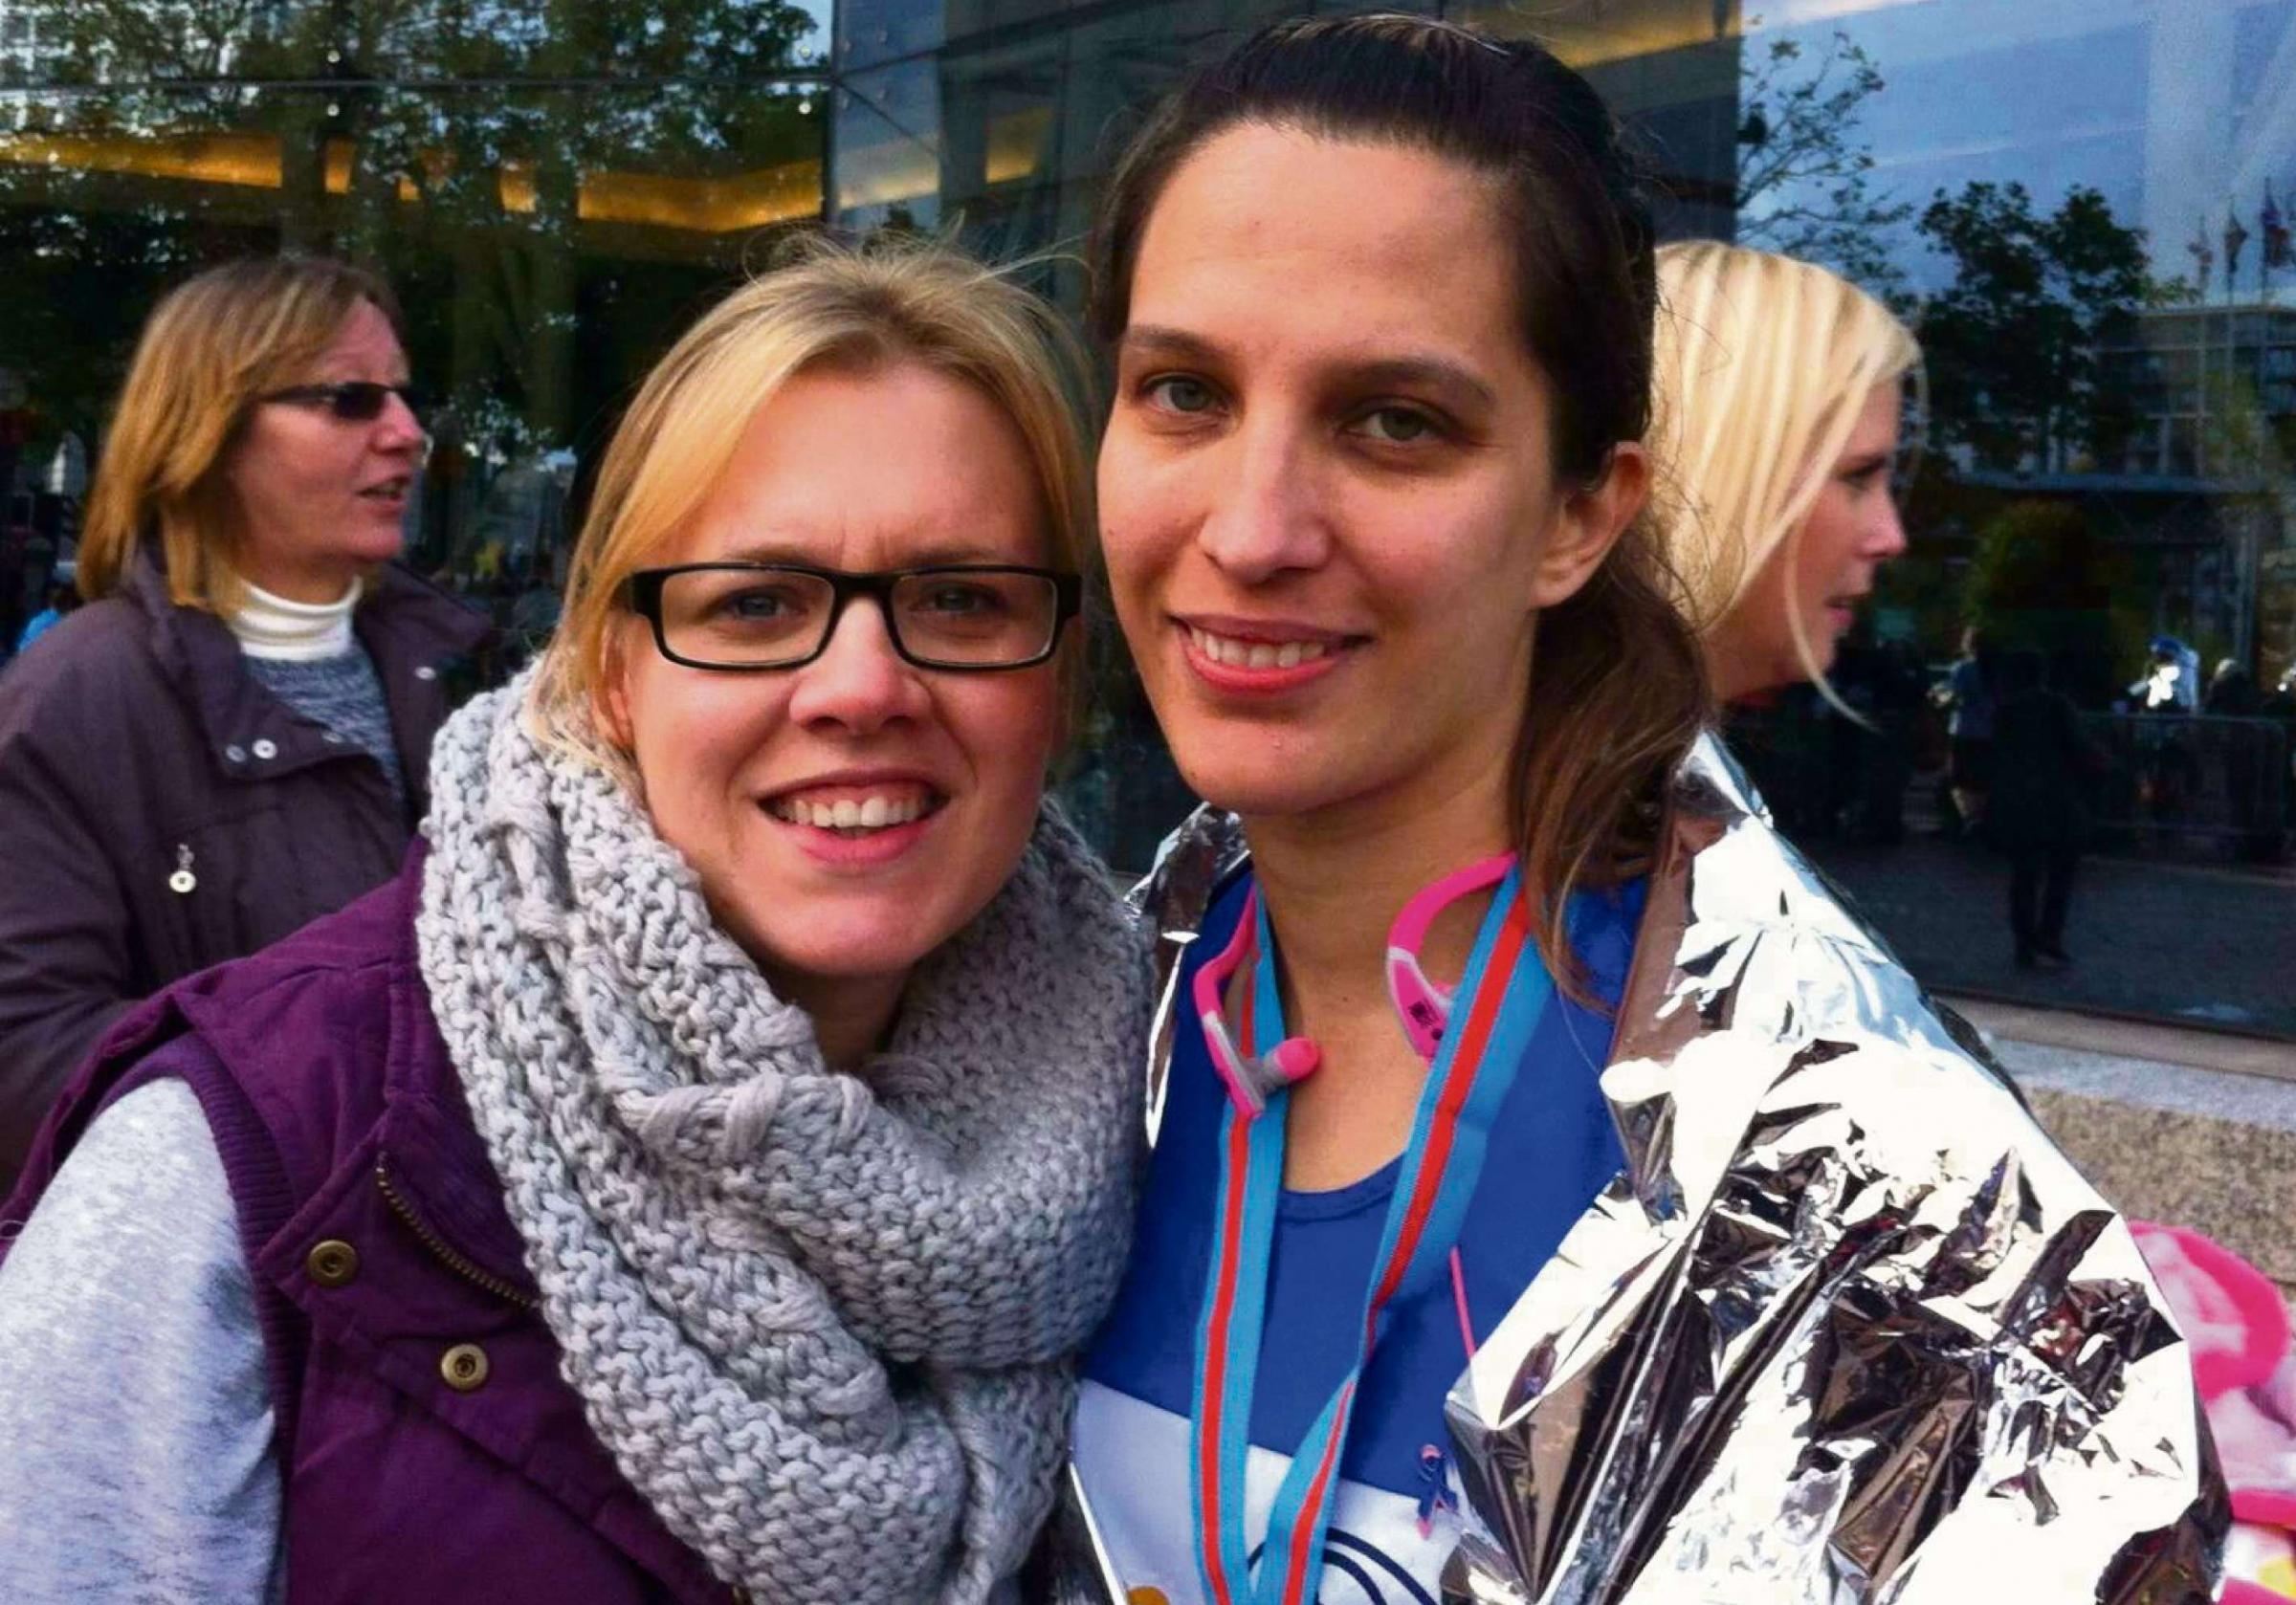 Lisa Edwards, right, with best friend Nina Gayden at the end of BUPA Great Birmingham Run 2013.